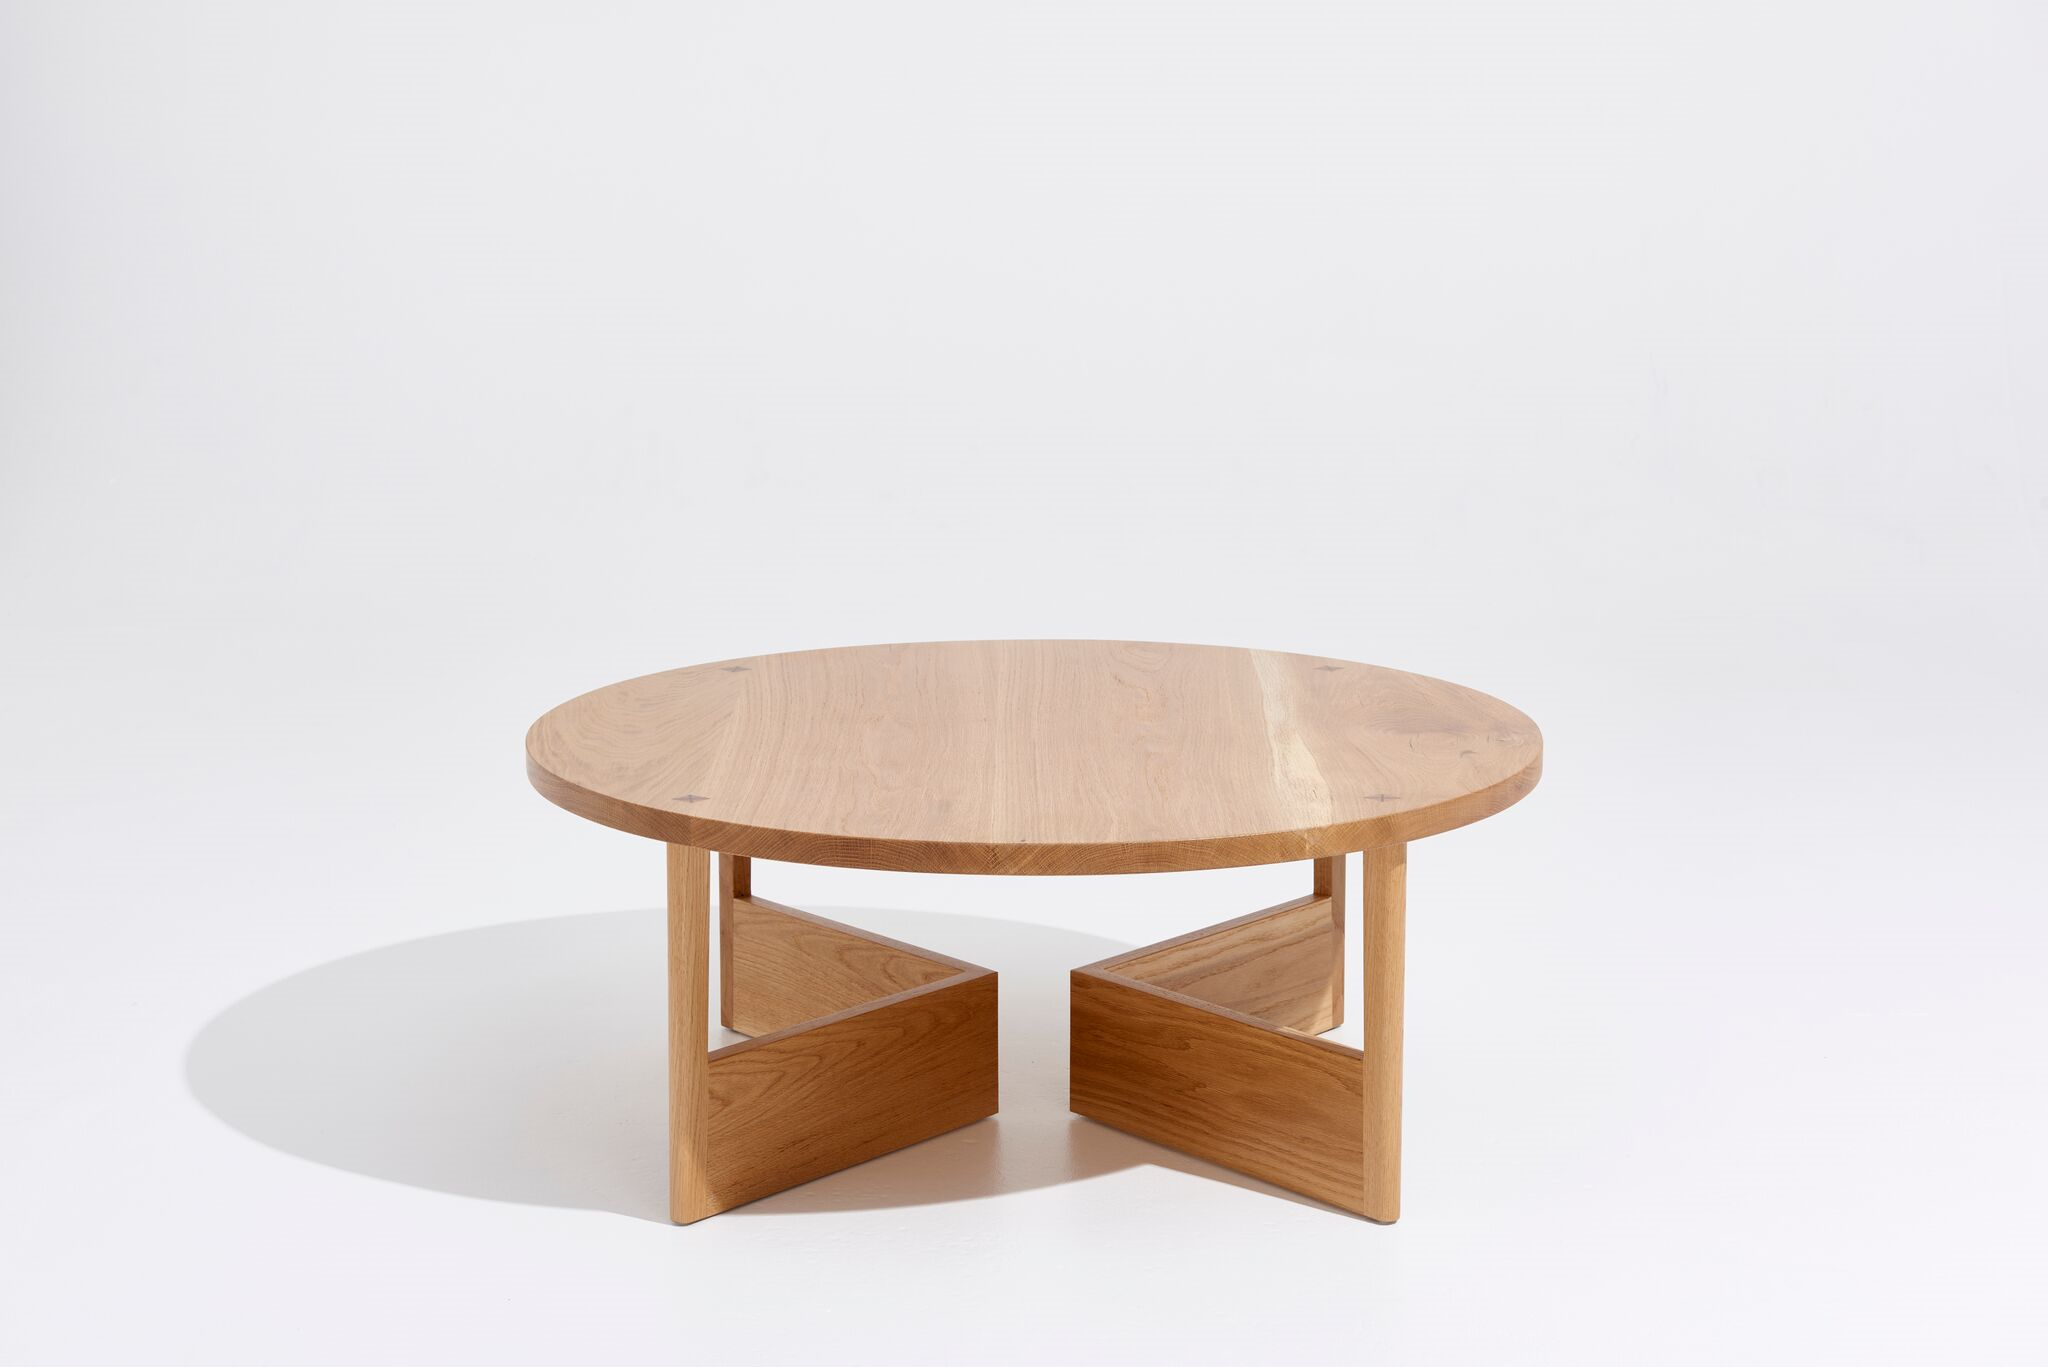 Gallery Of Across Table By Apparentt Local Australian Lighting & Furniture Design Richmond, Melbourne Image 1